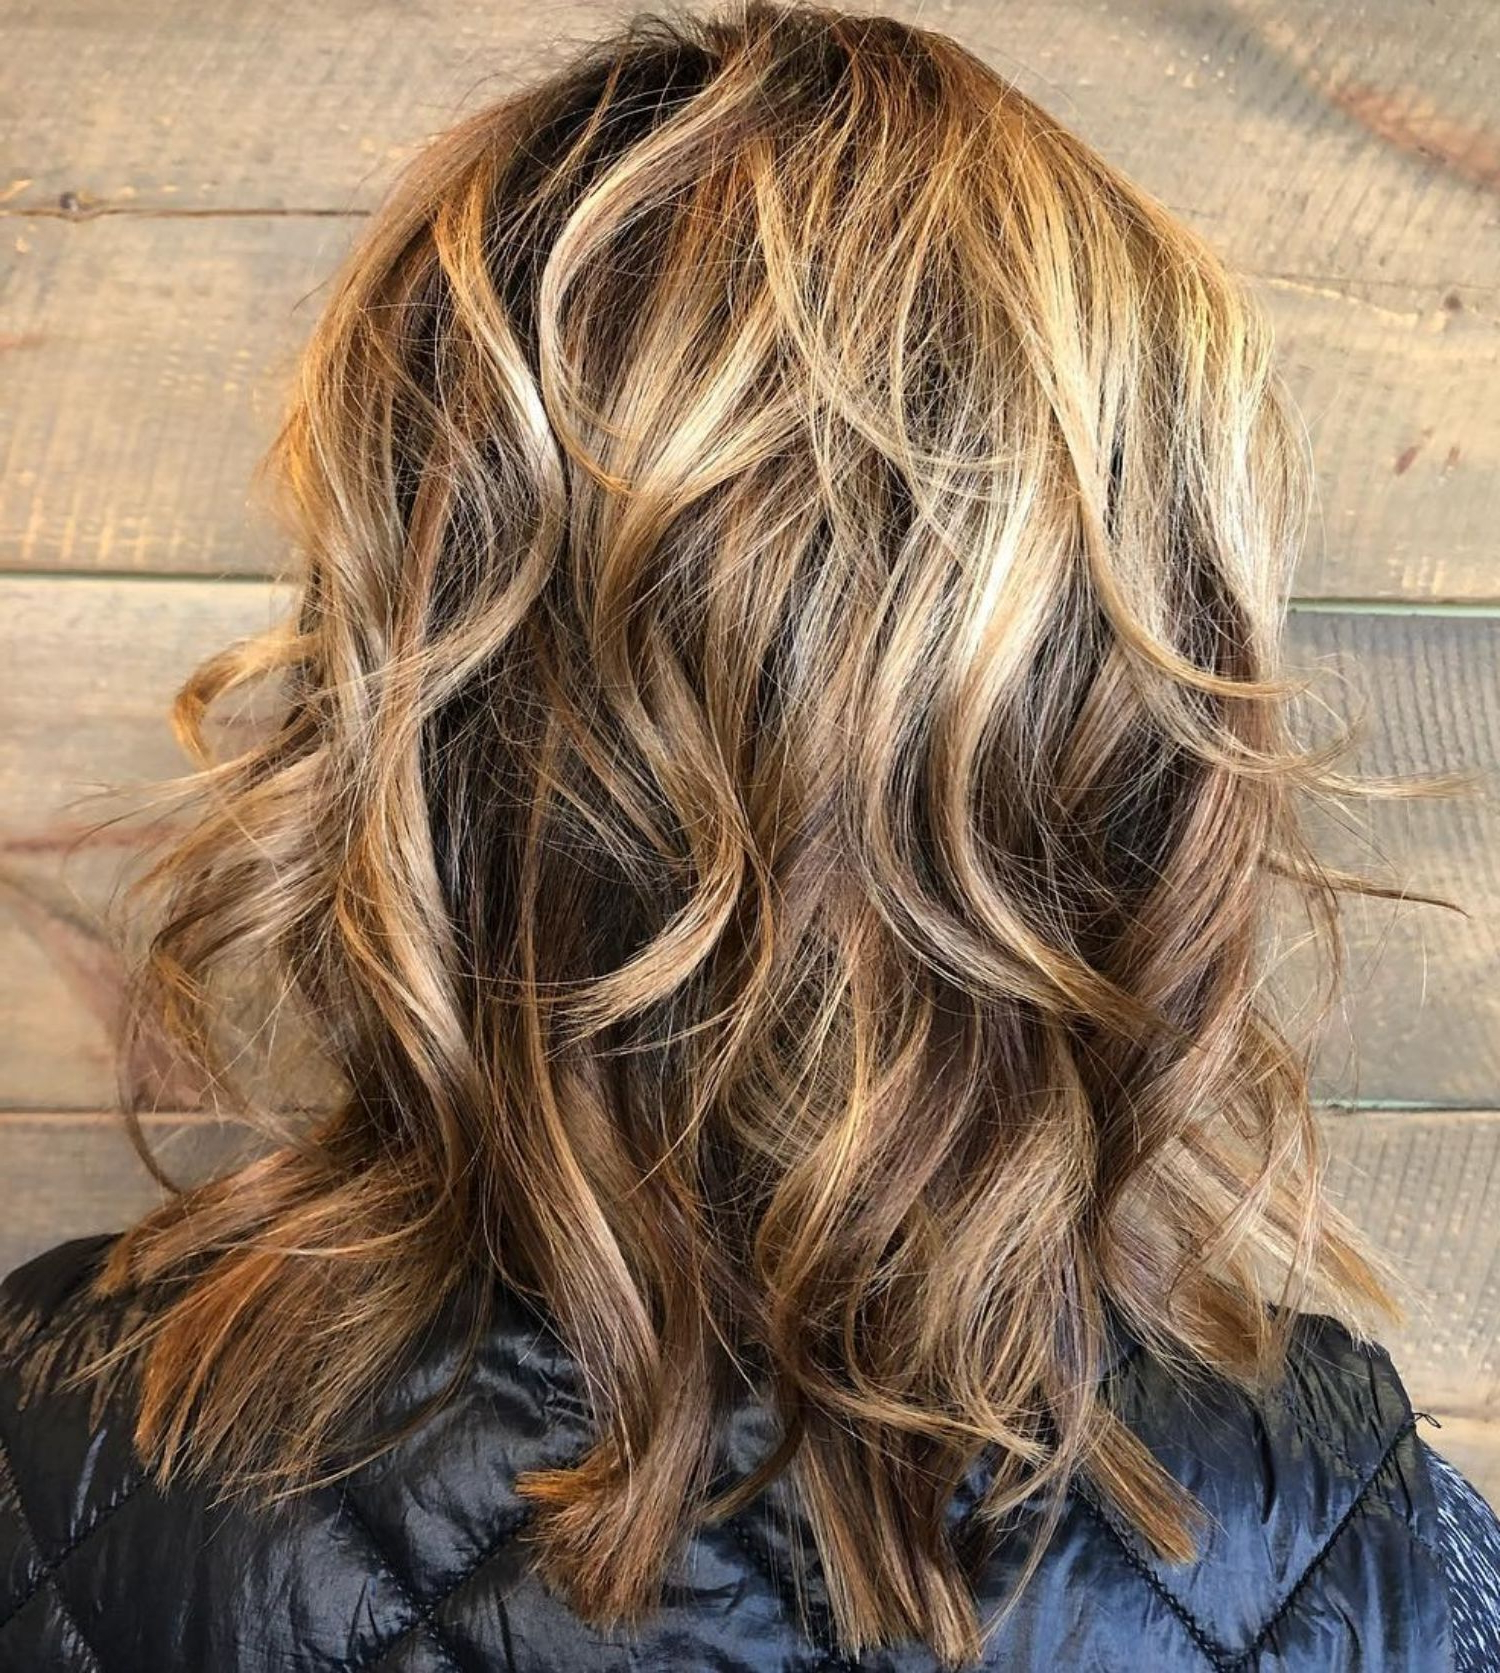 Pin On Hair Cuts I Am Thinking Of Trying Intended For Well Known Curly Bronde Haircuts With Choppy Ends (Gallery 1 of 20)